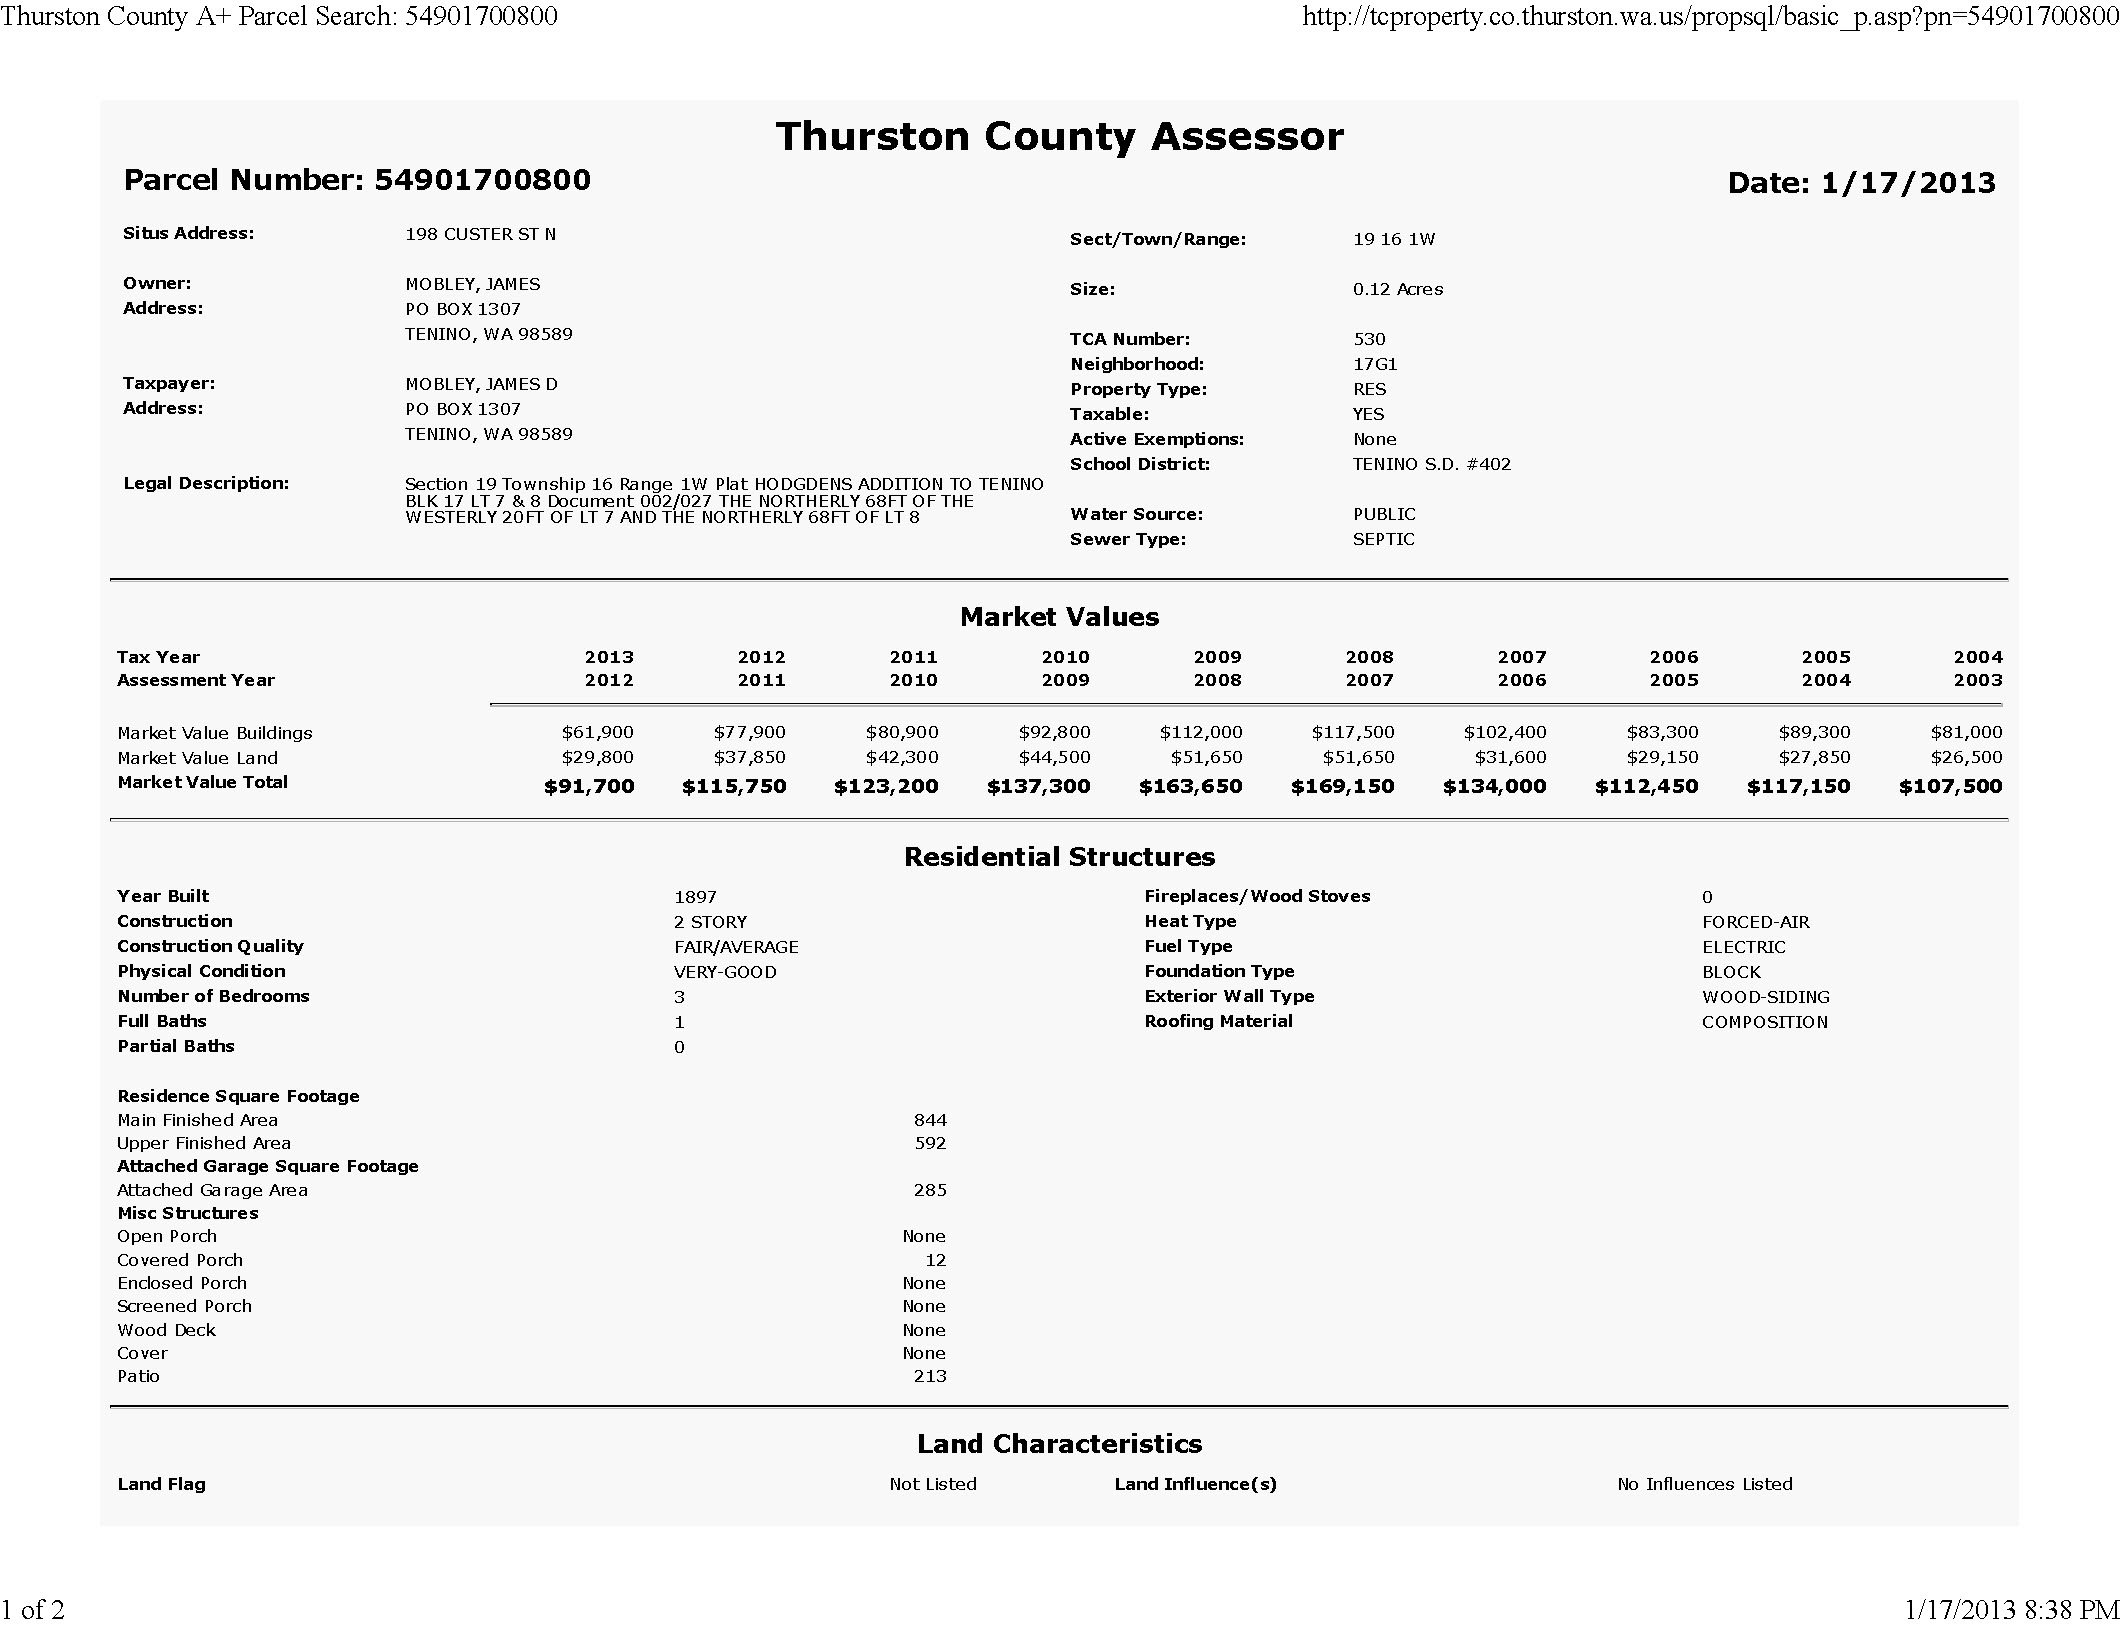 Copy of Mobley James Donald Thurston County property info1.jpg